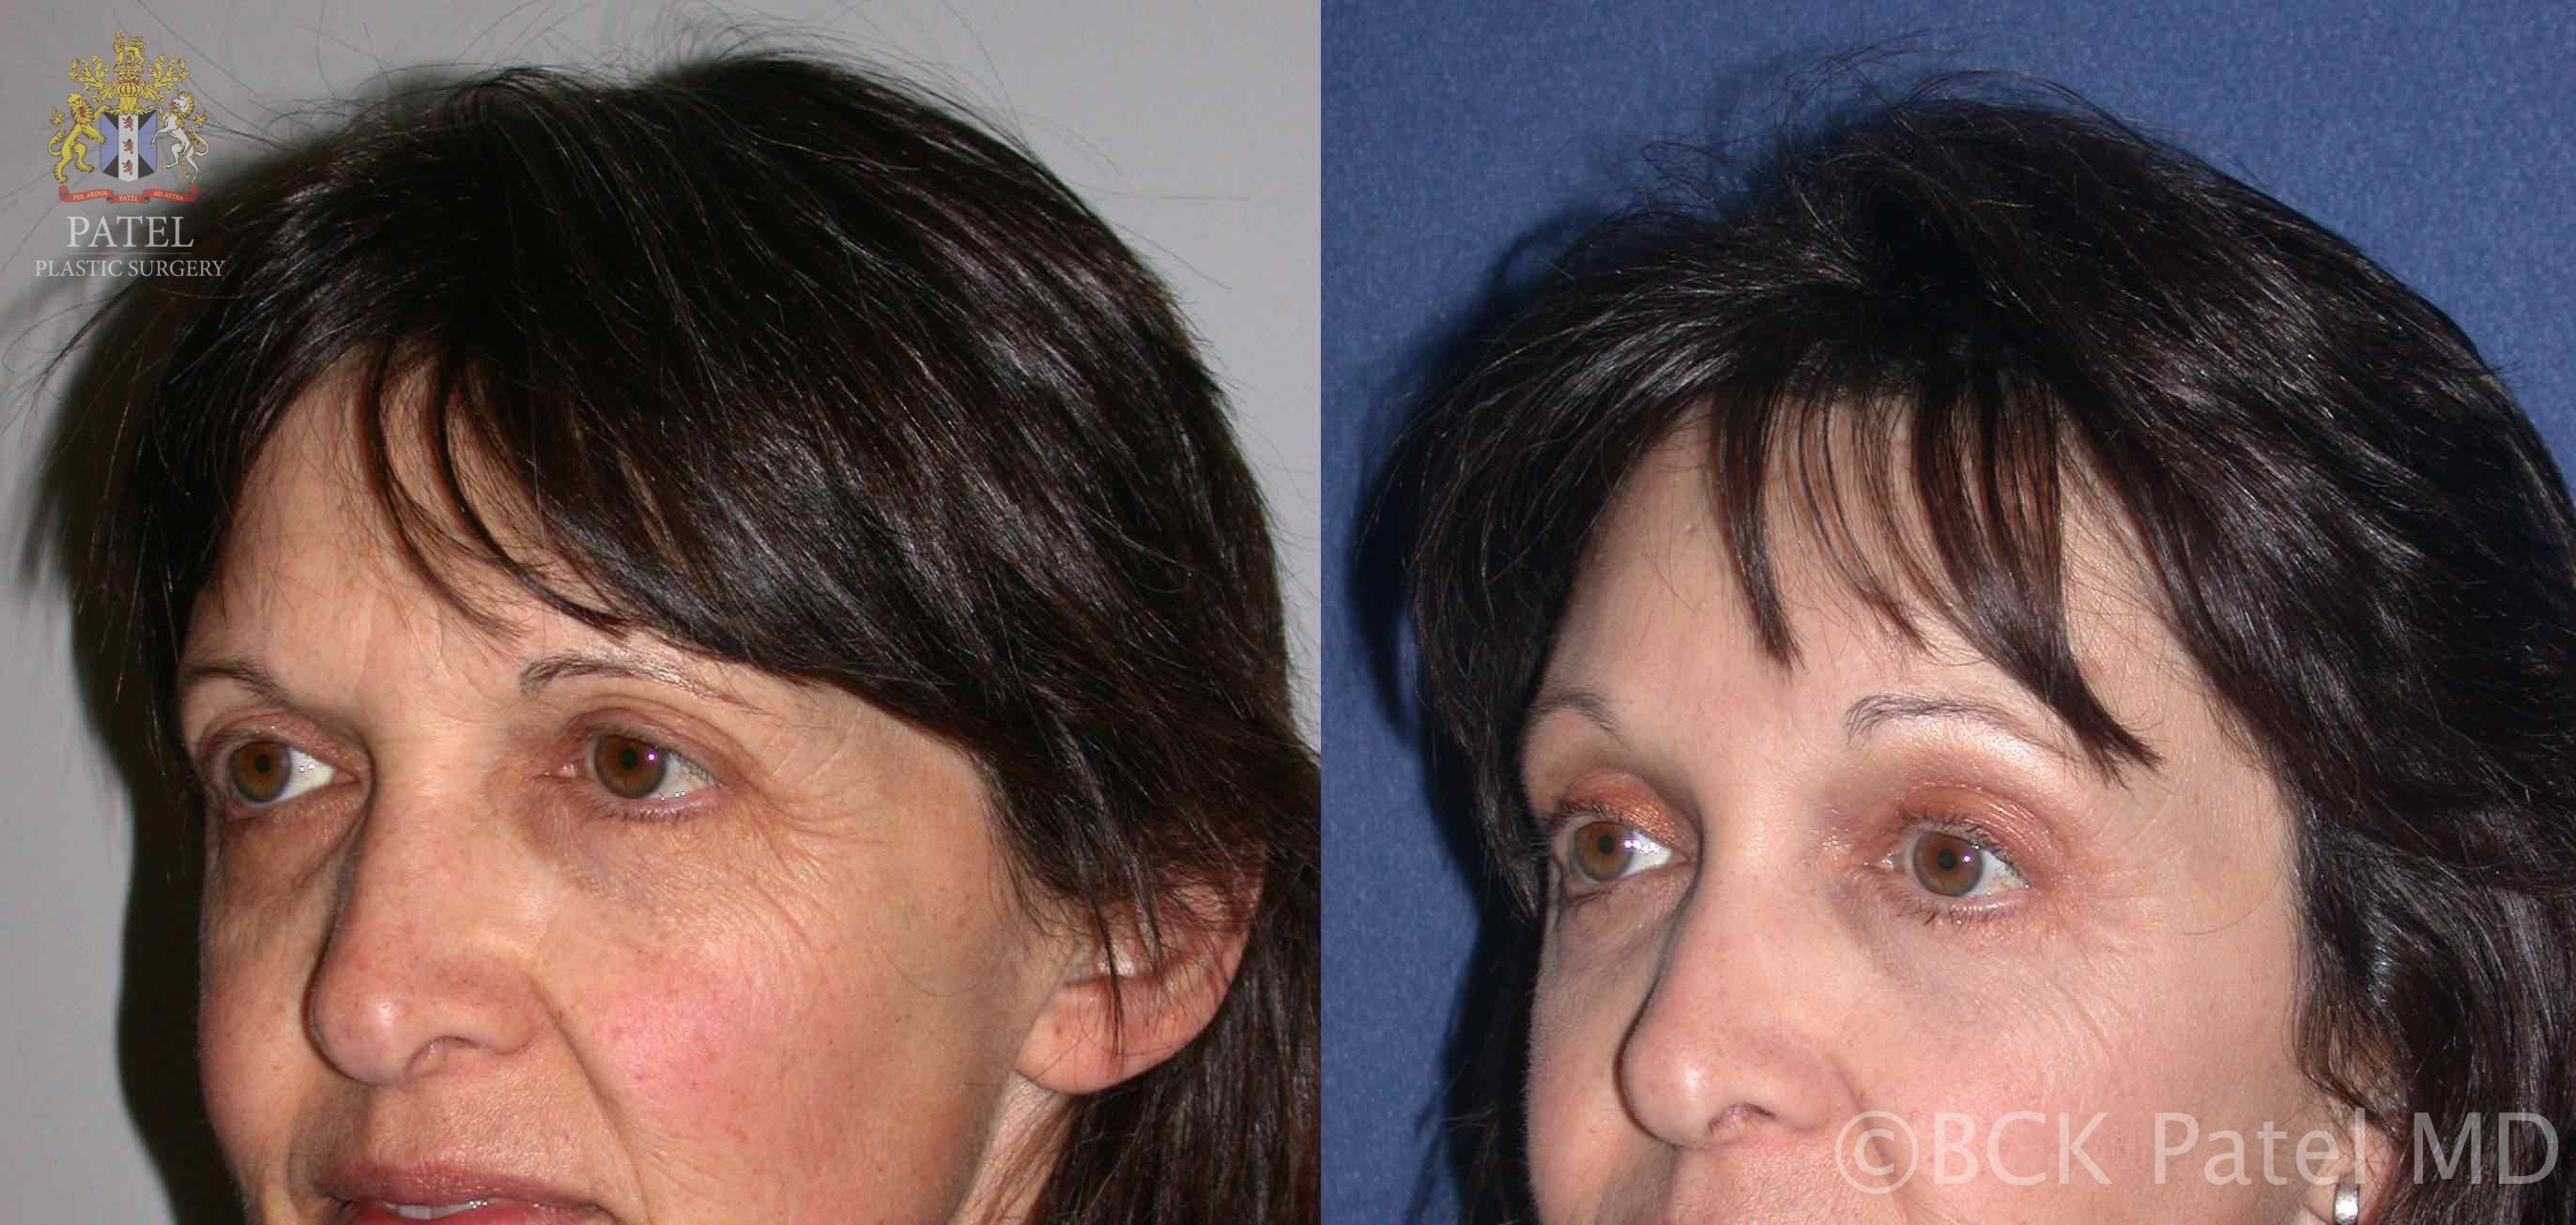 englishsurgeon.com. Photos show improvement in brow positions with endoscopic browlifts